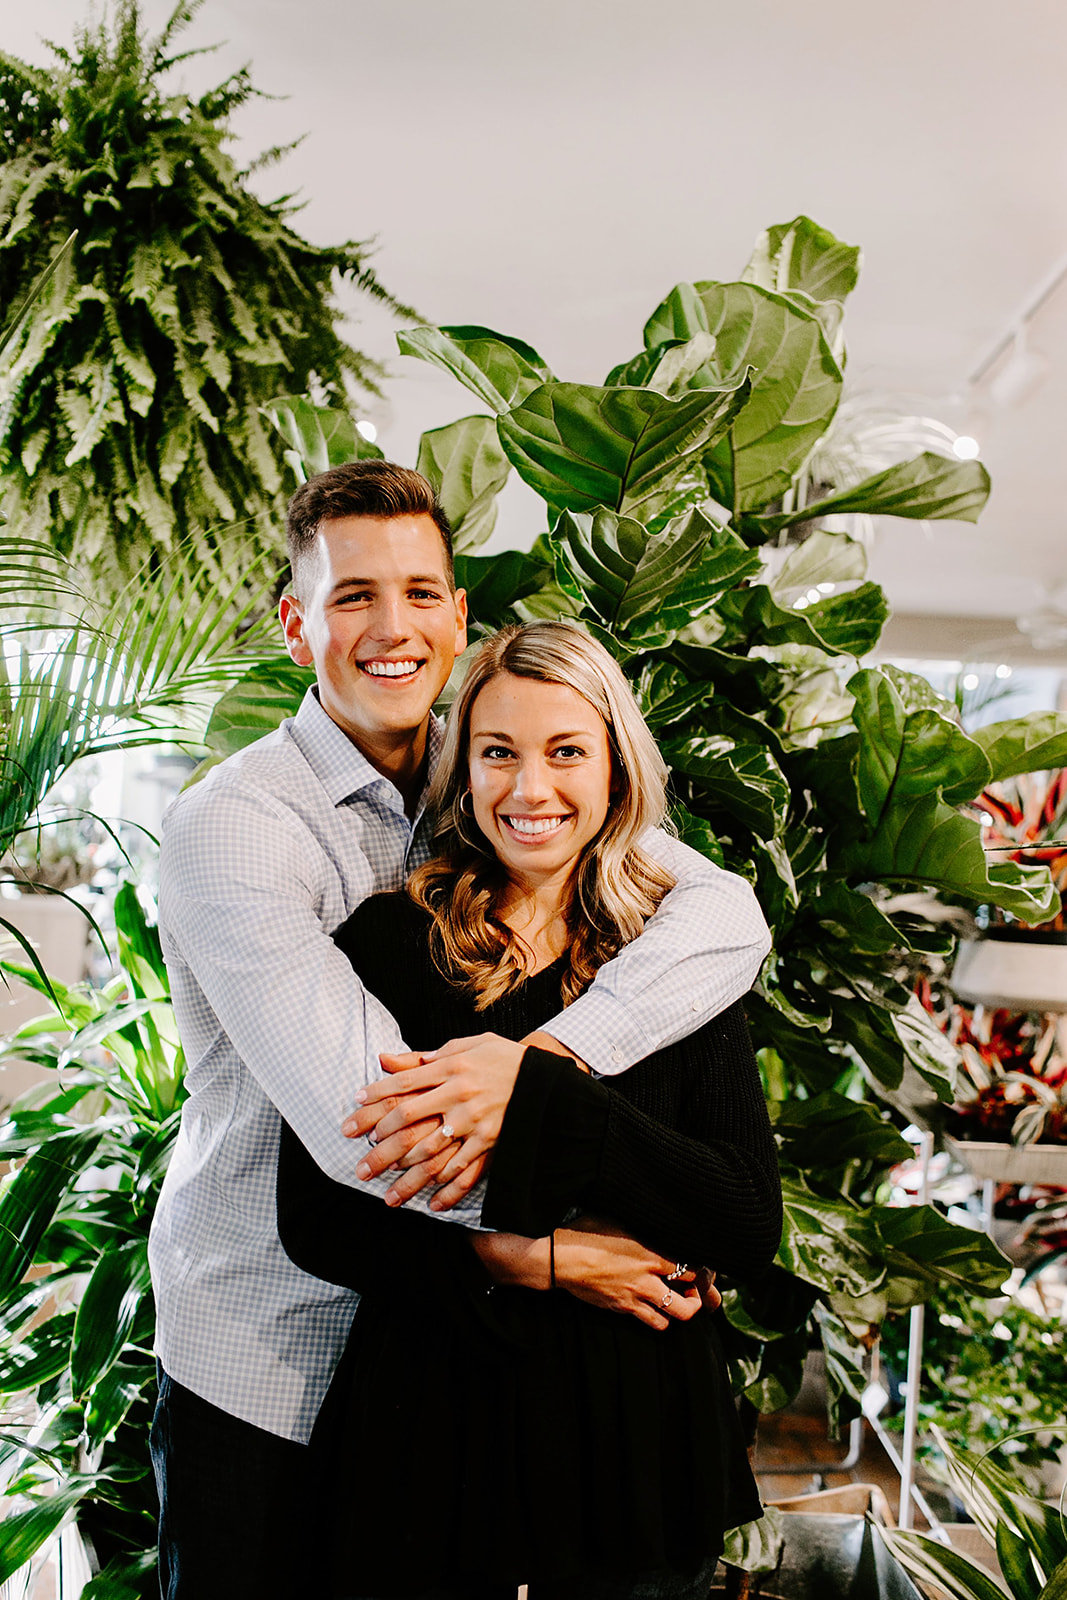 Lindy and JT Proposal at Allisonville Nursery in Indianapolis Indiana by Emily Elyse Wehner Photography LLC-119.jpg